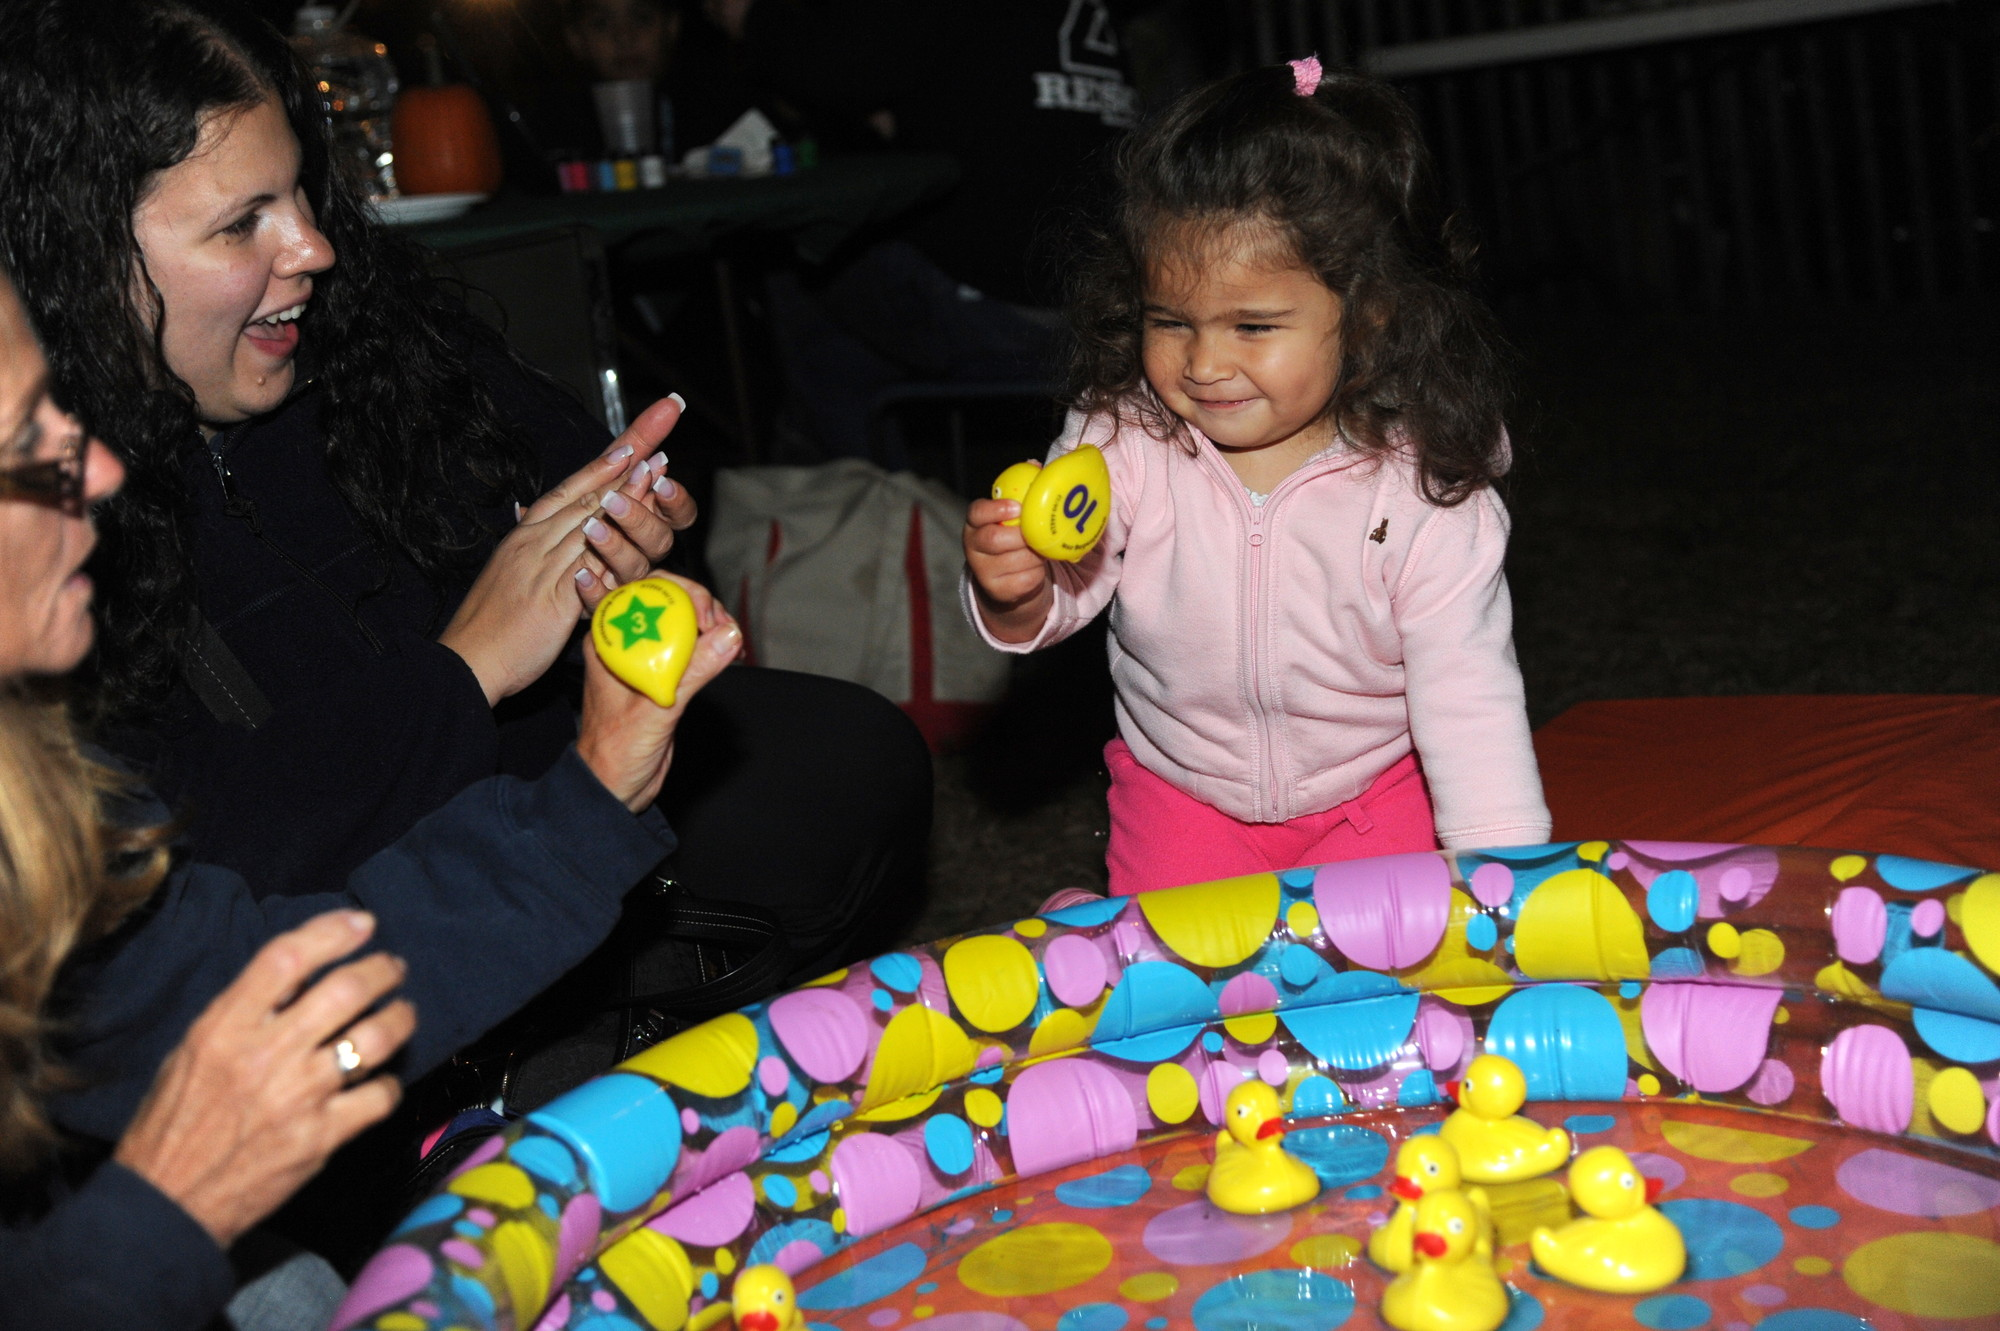 Jeanamarie Otero, 20 months old, pulled a rubber duck from the inflatable pool.